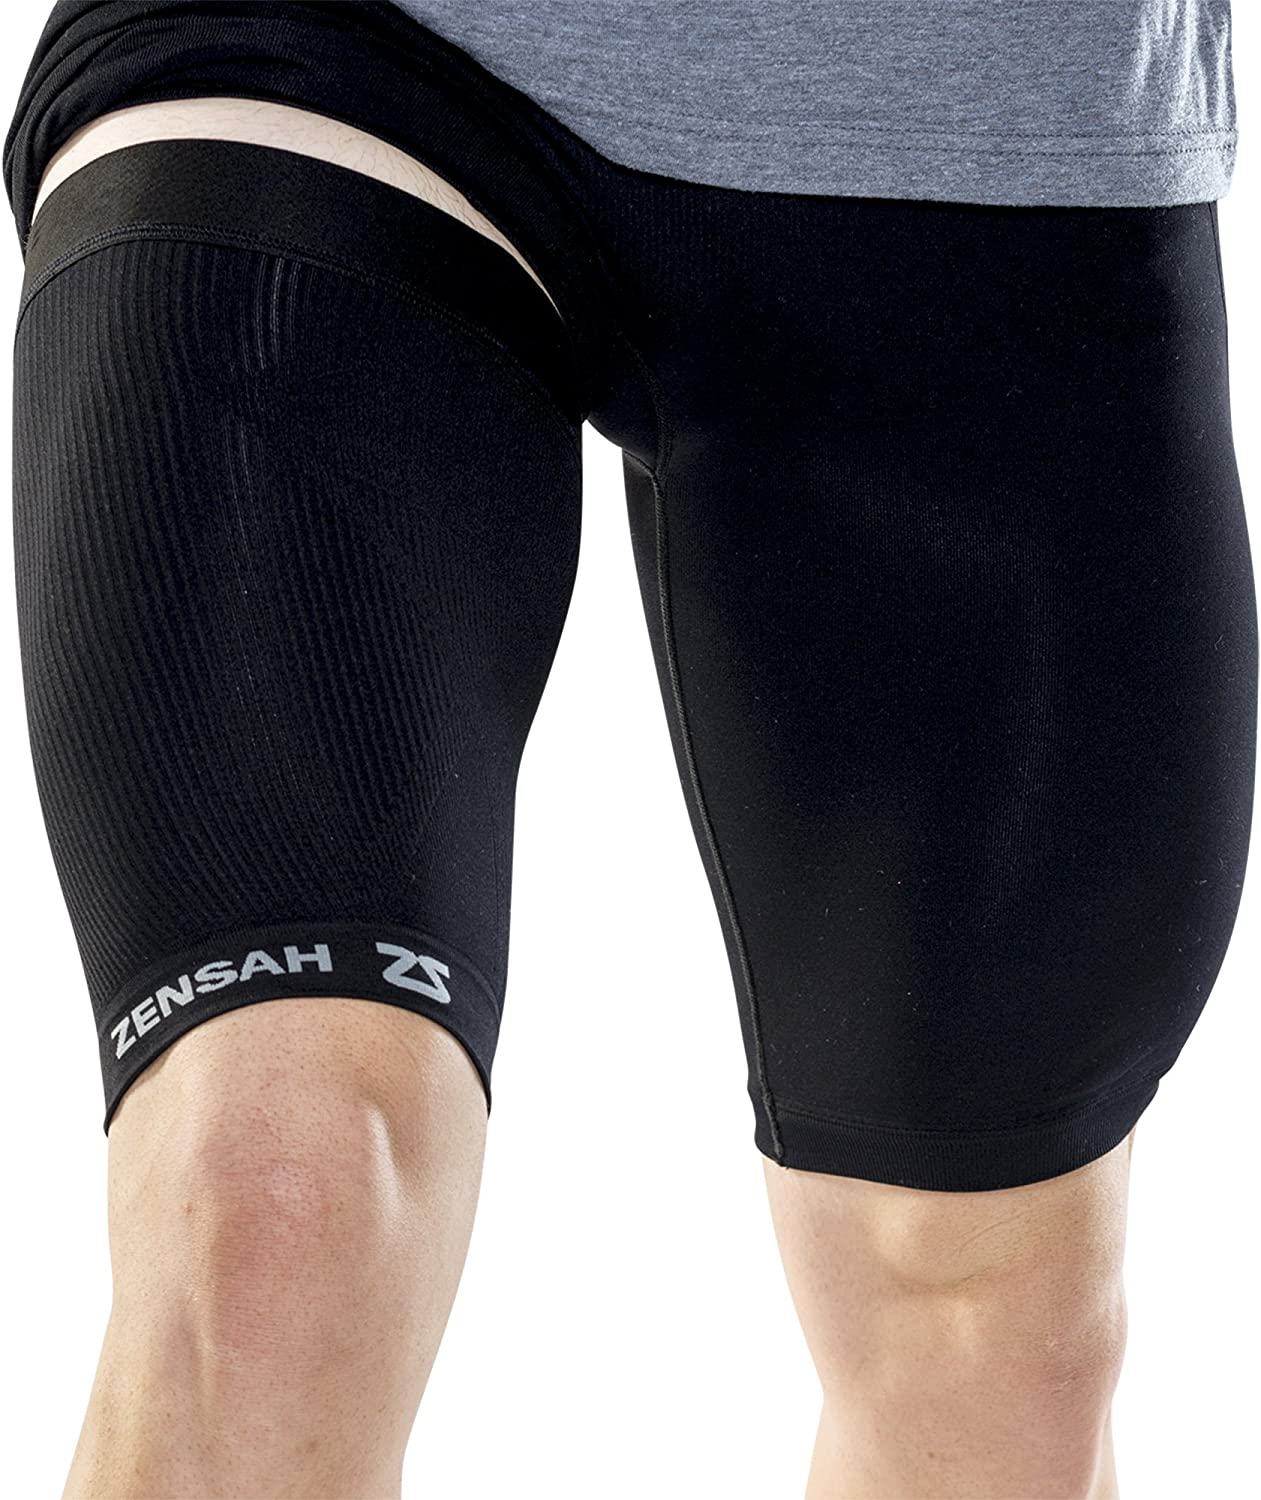 Zensah Thigh Compression Sleeve – Hamstring Support, Quad Compression Sleeve for Men and Women - Thigh Sleeve Wrap, Great for Running, Sports, Groin Pulls: Clothing